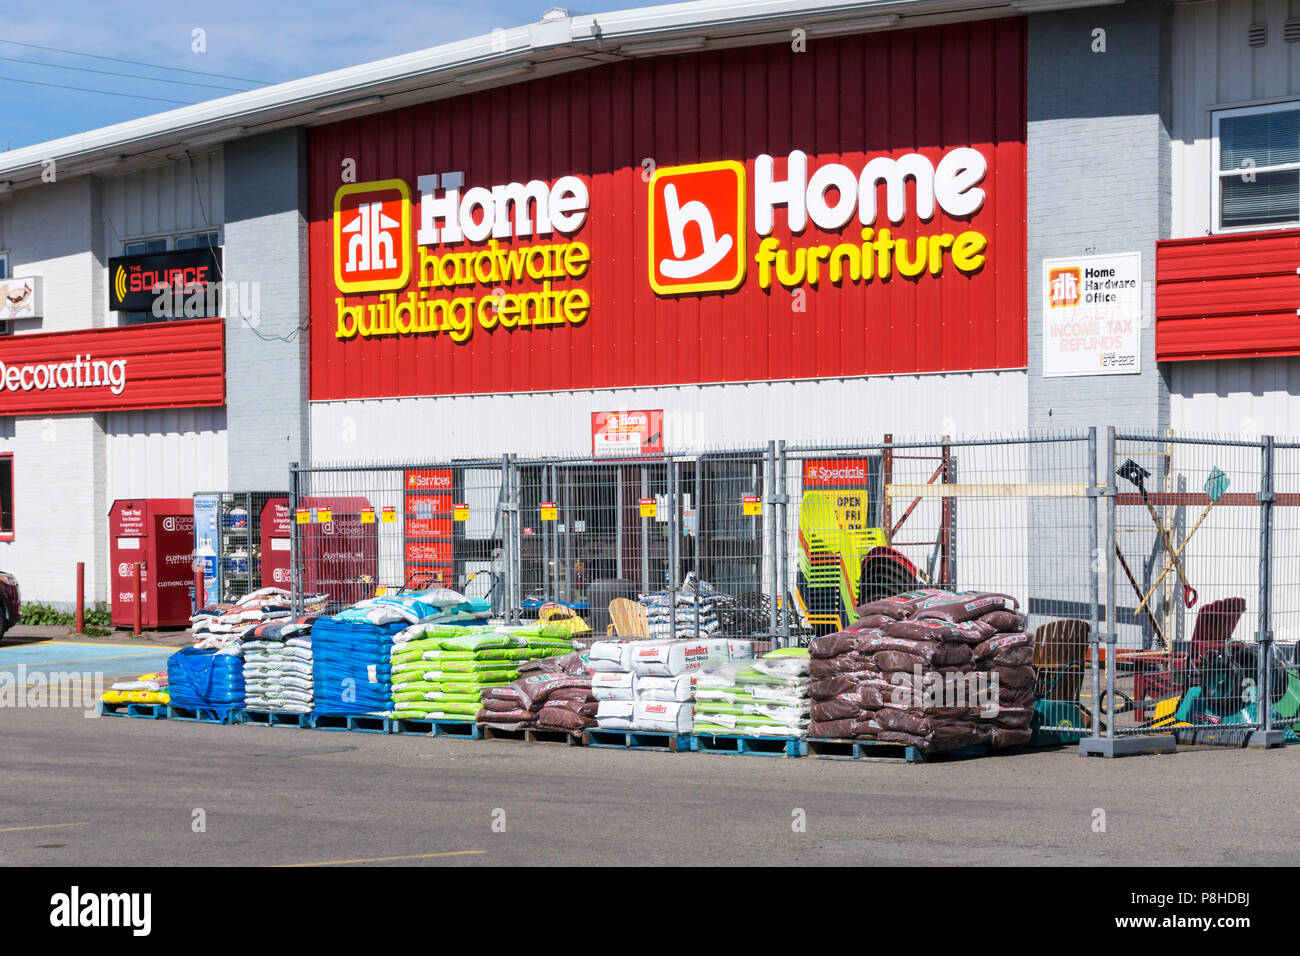 A Home Hardware Building Centre branch - Stock Image